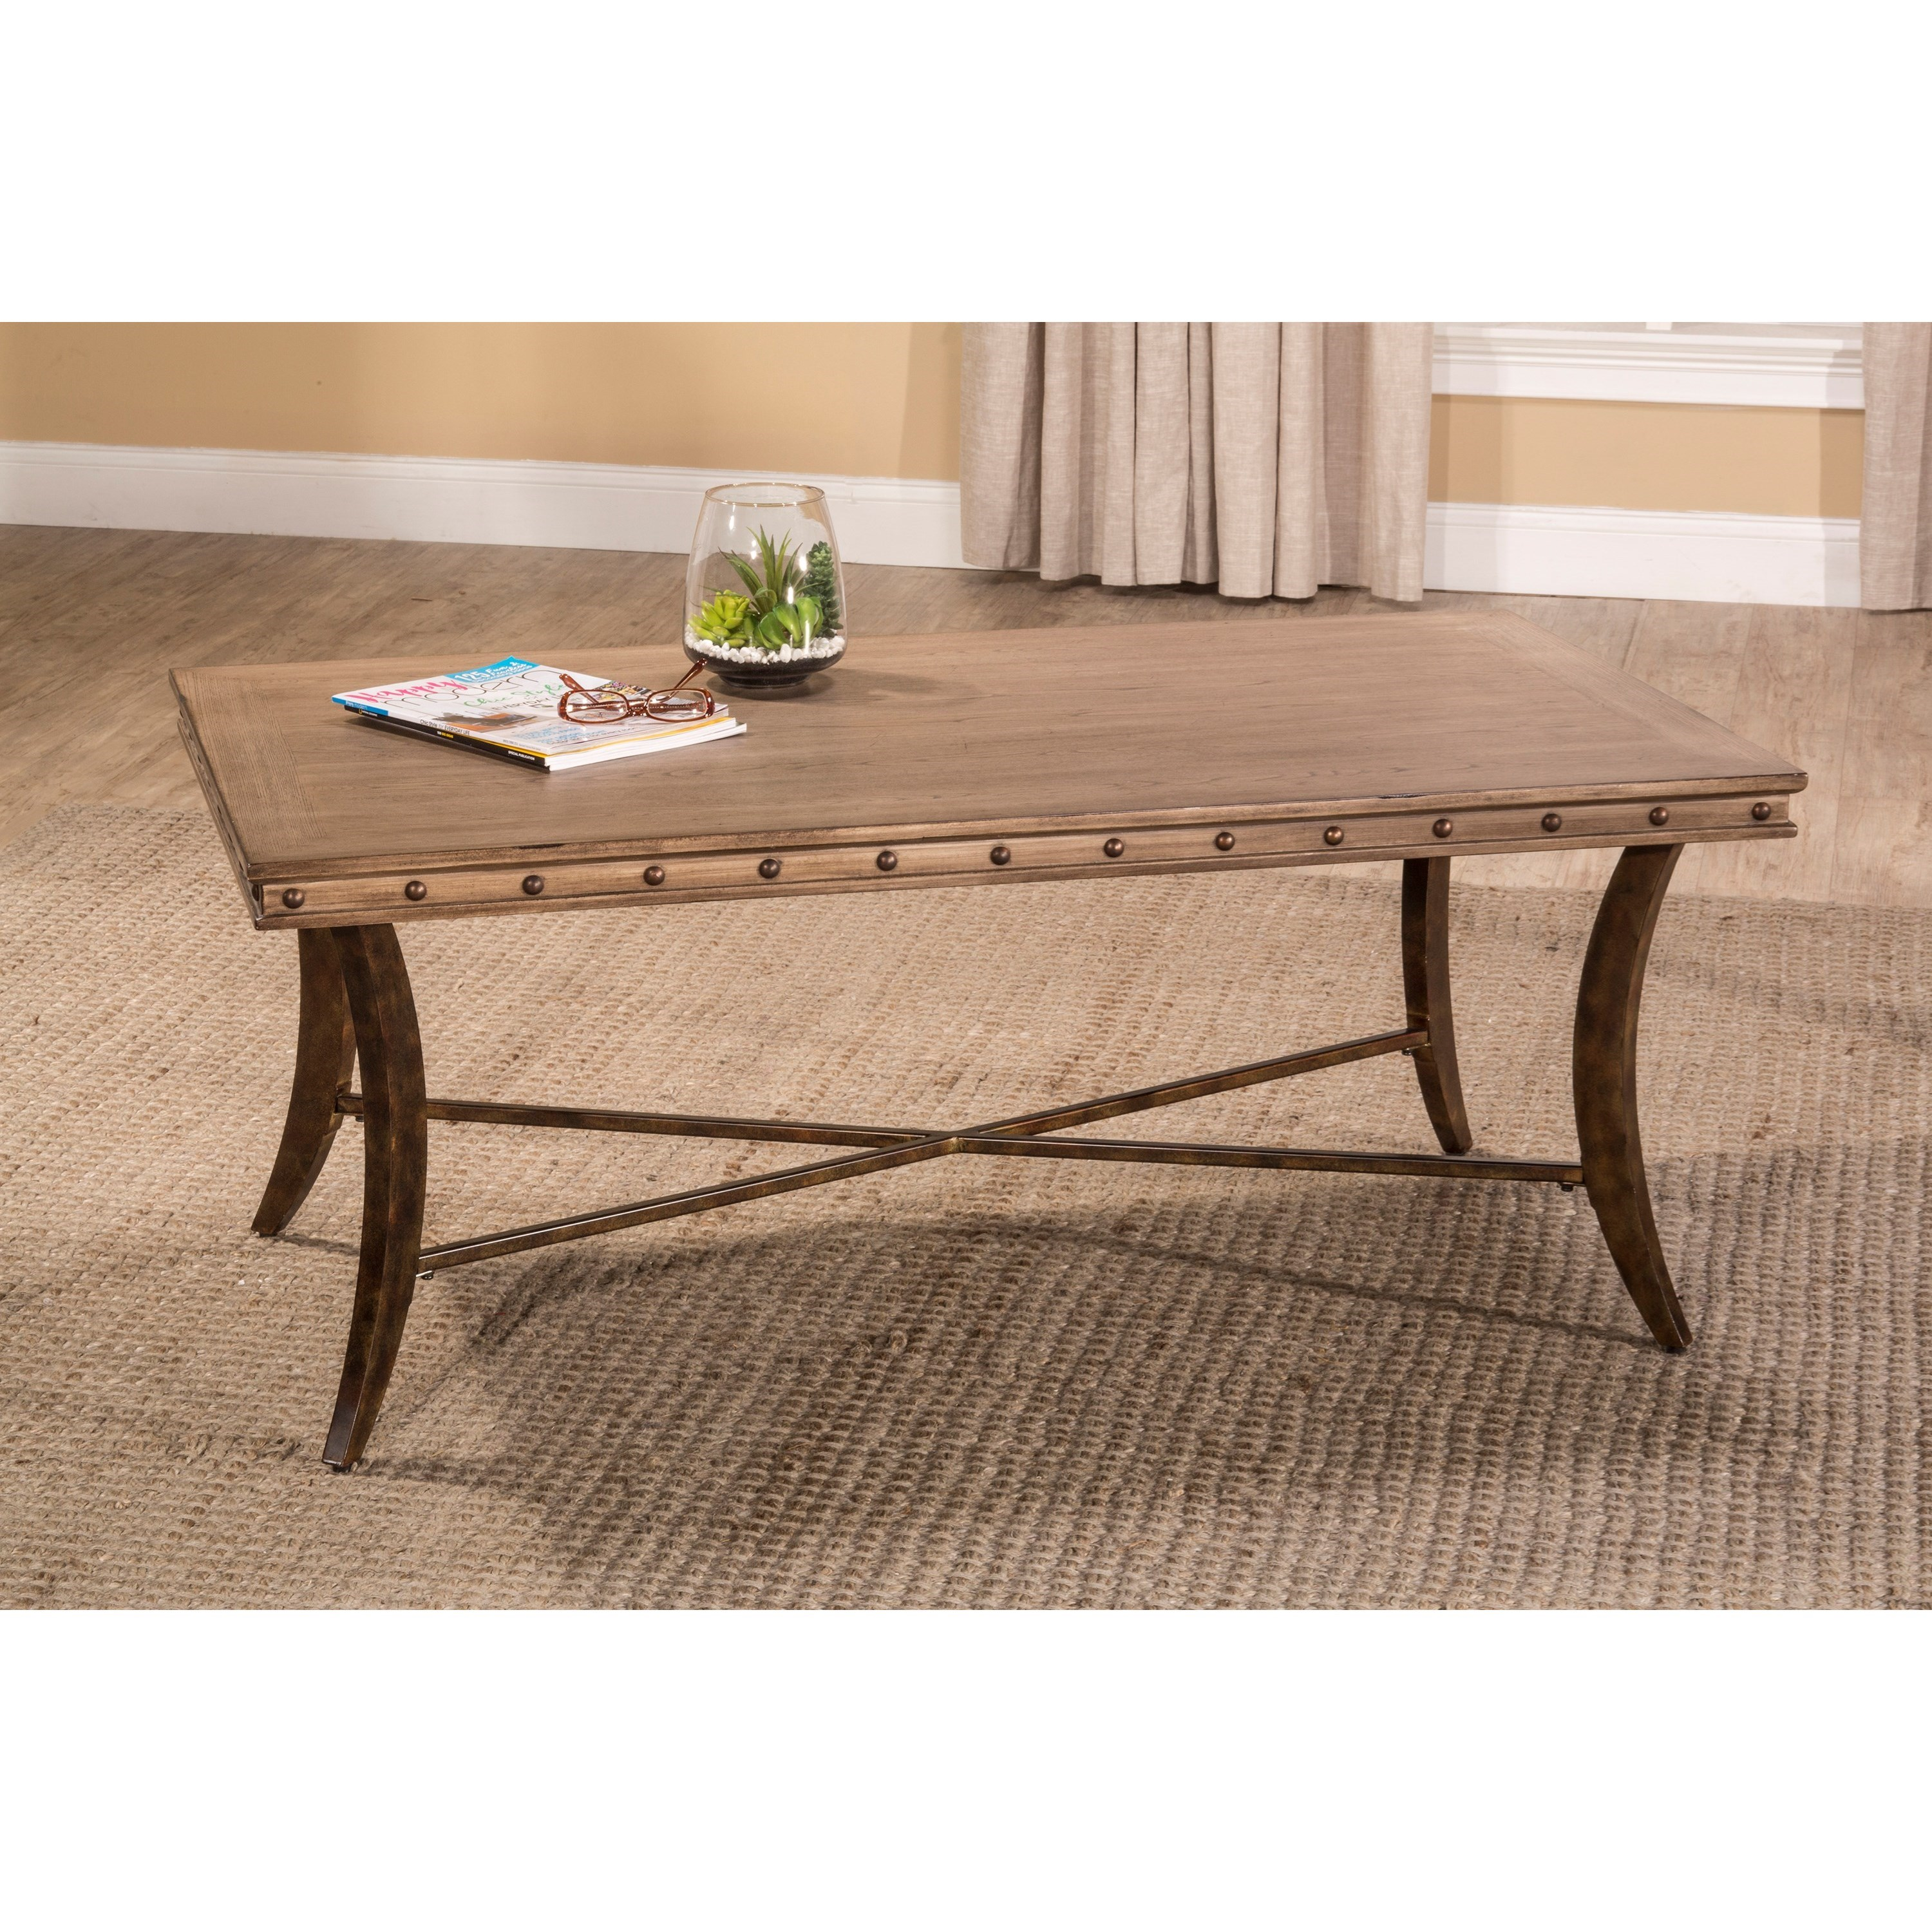 Hillsdale emmons 5984 881 coffee table with stud detailing for Coffee table with studs